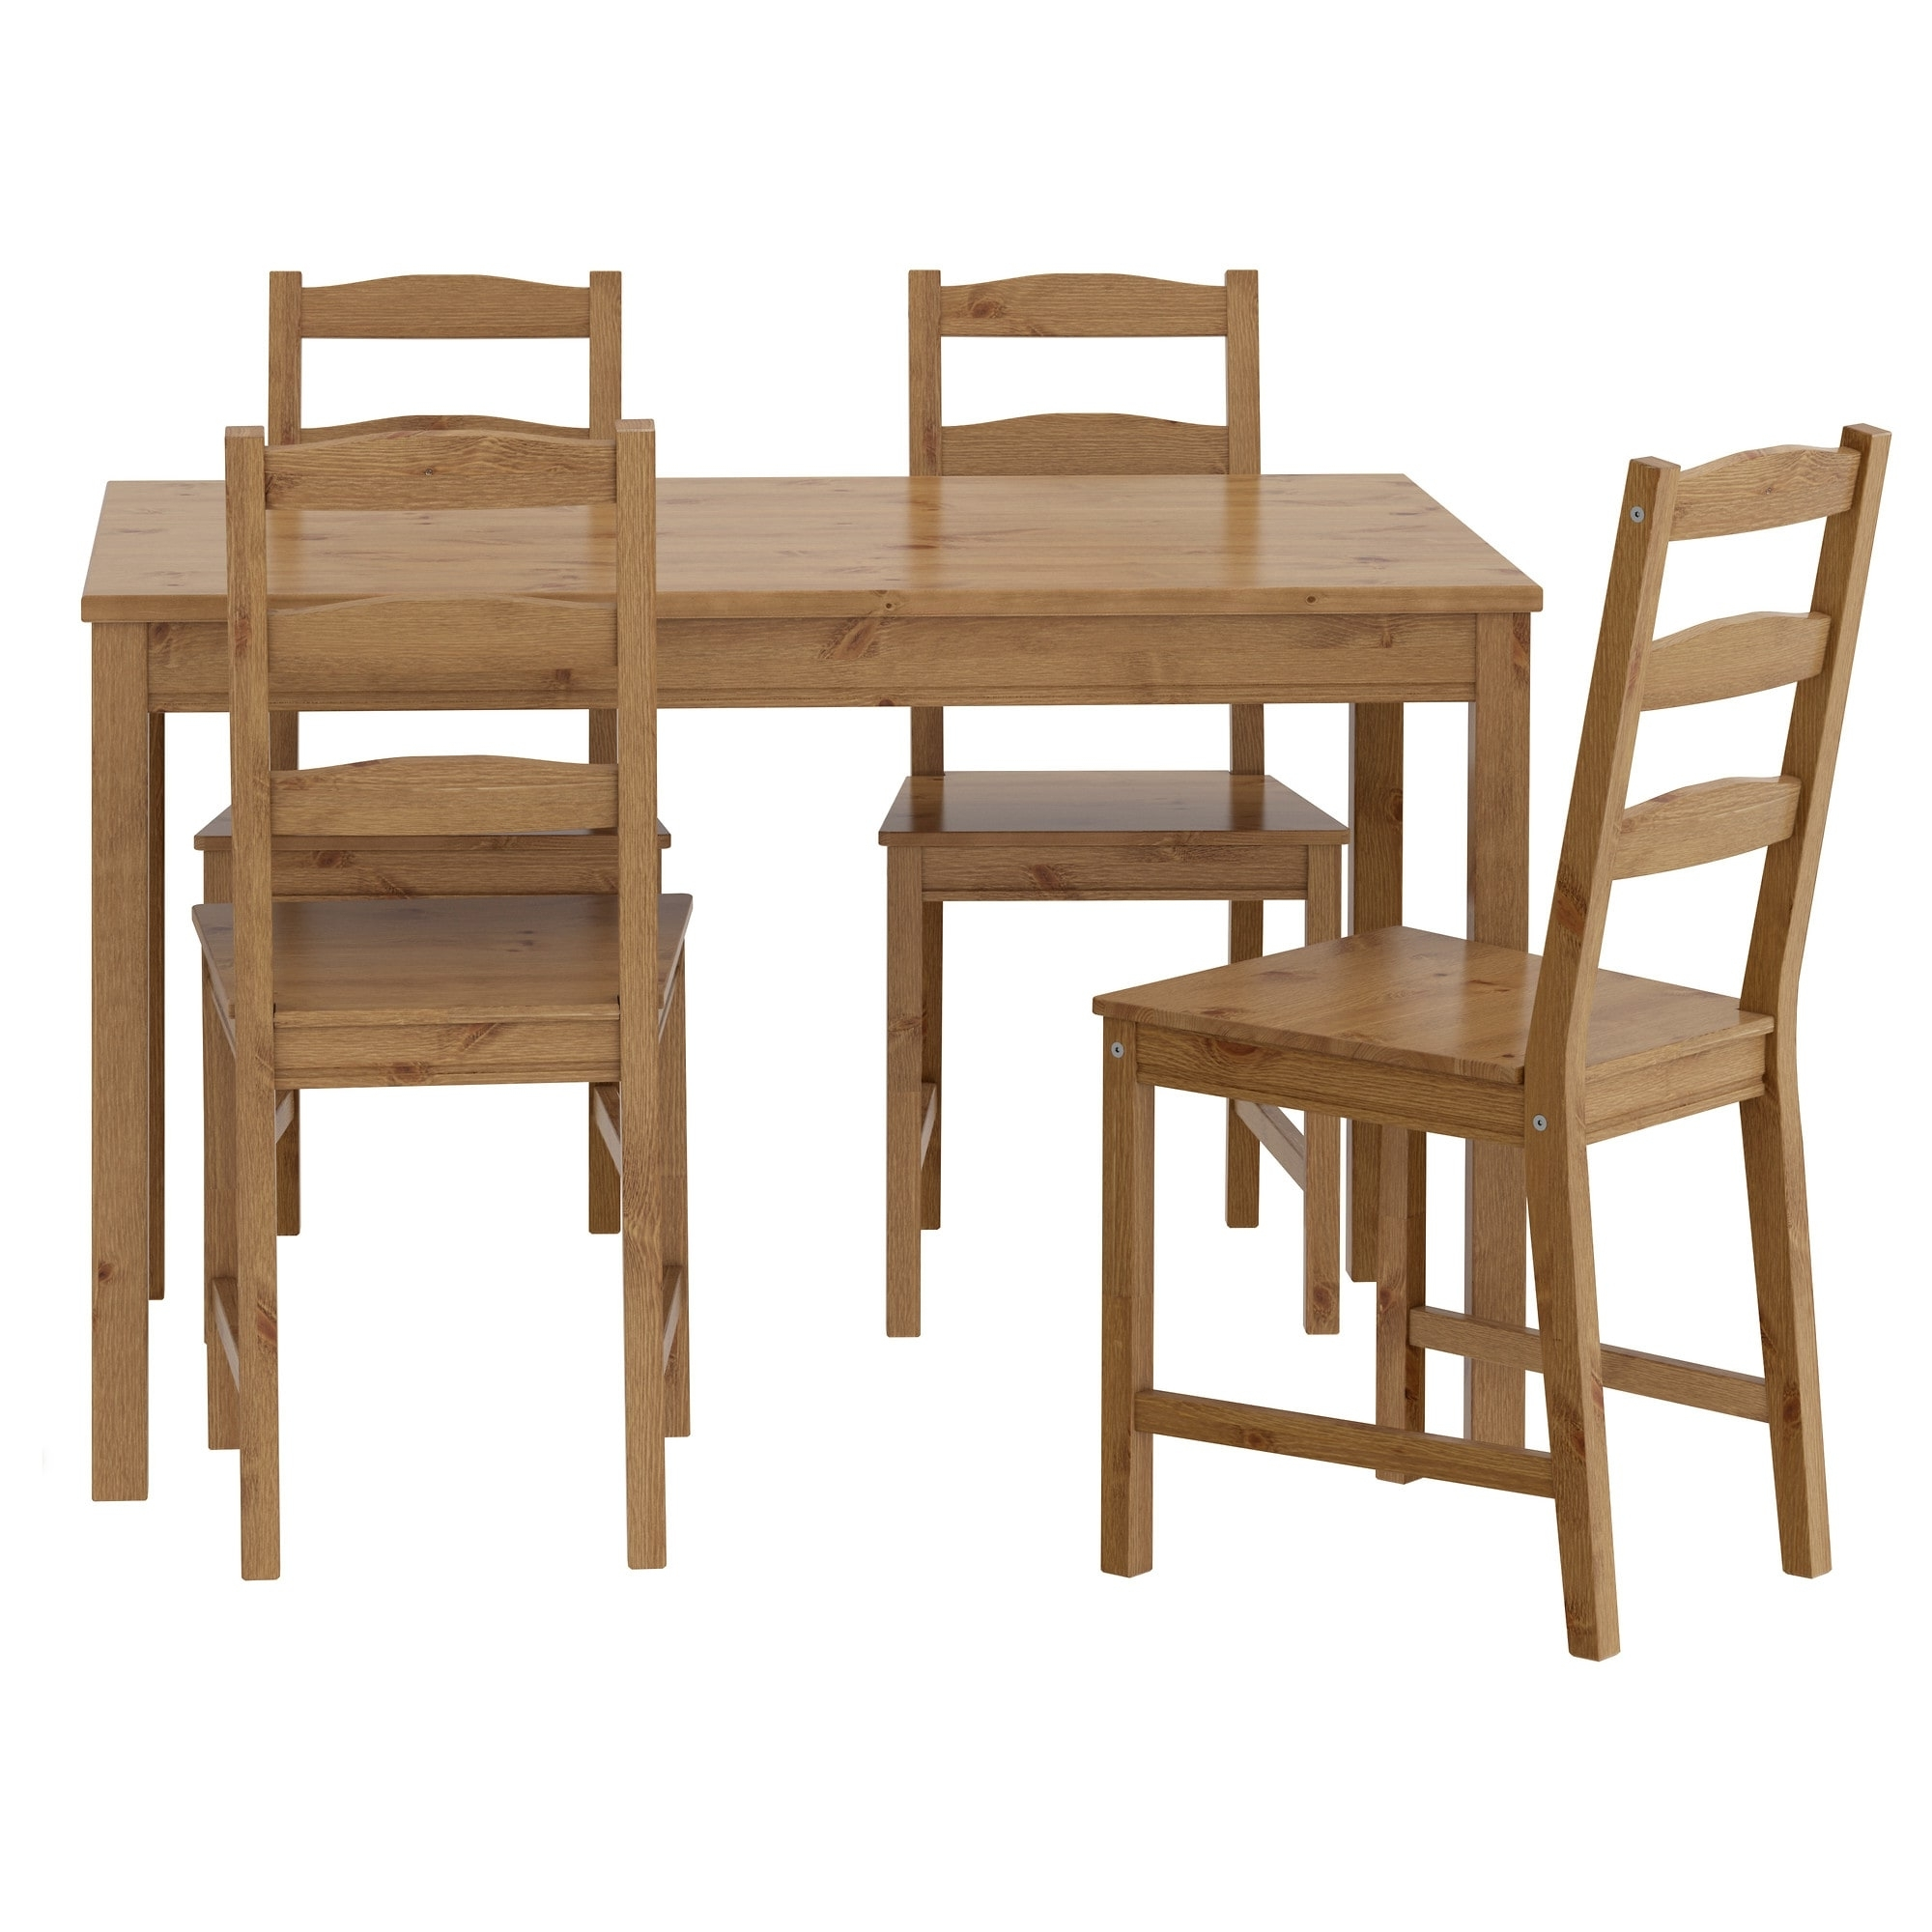 Preferred Jokkmokk Table And 4 Chairs Antique Stain – Ikea Inside Ikea Round Dining Tables Set (View 13 of 25)